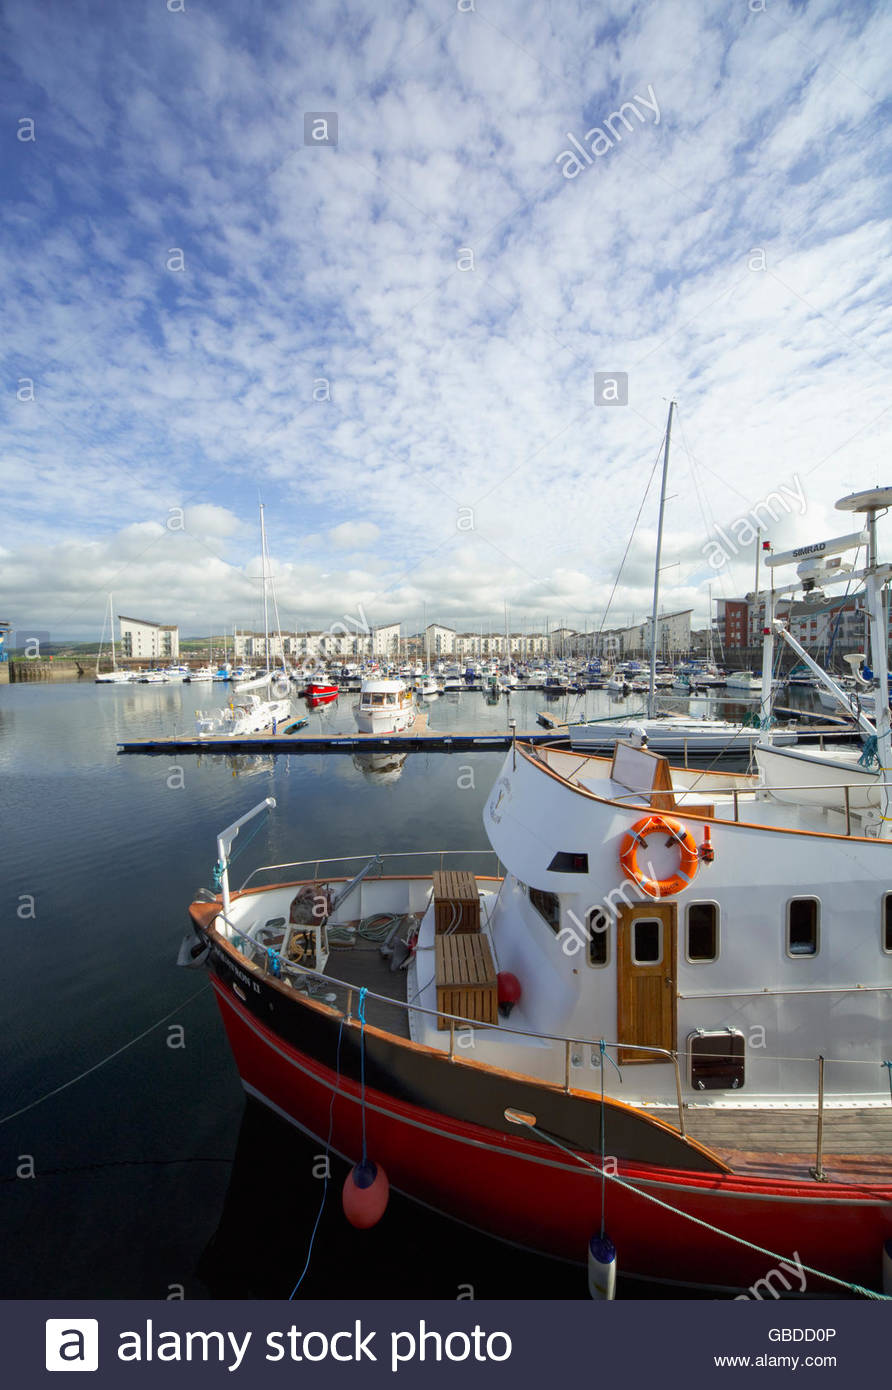 Boats moored in the Clyde Marina at Ardrossan, North Ayrshire, Scotland. - Stock Image